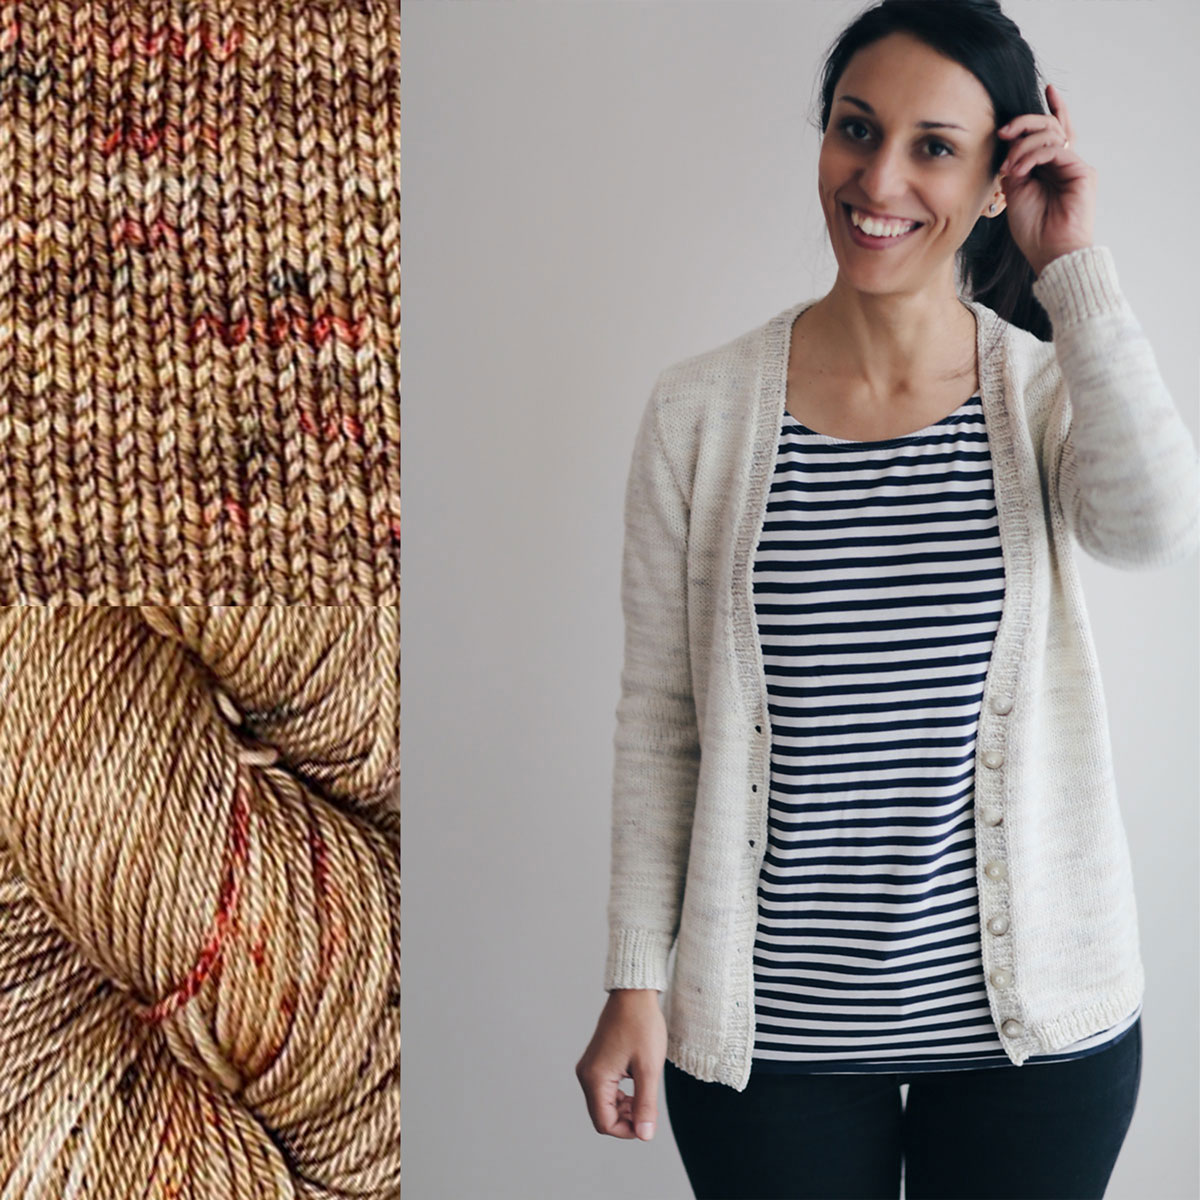 Madelinetosh Sweater Club - Spice Market